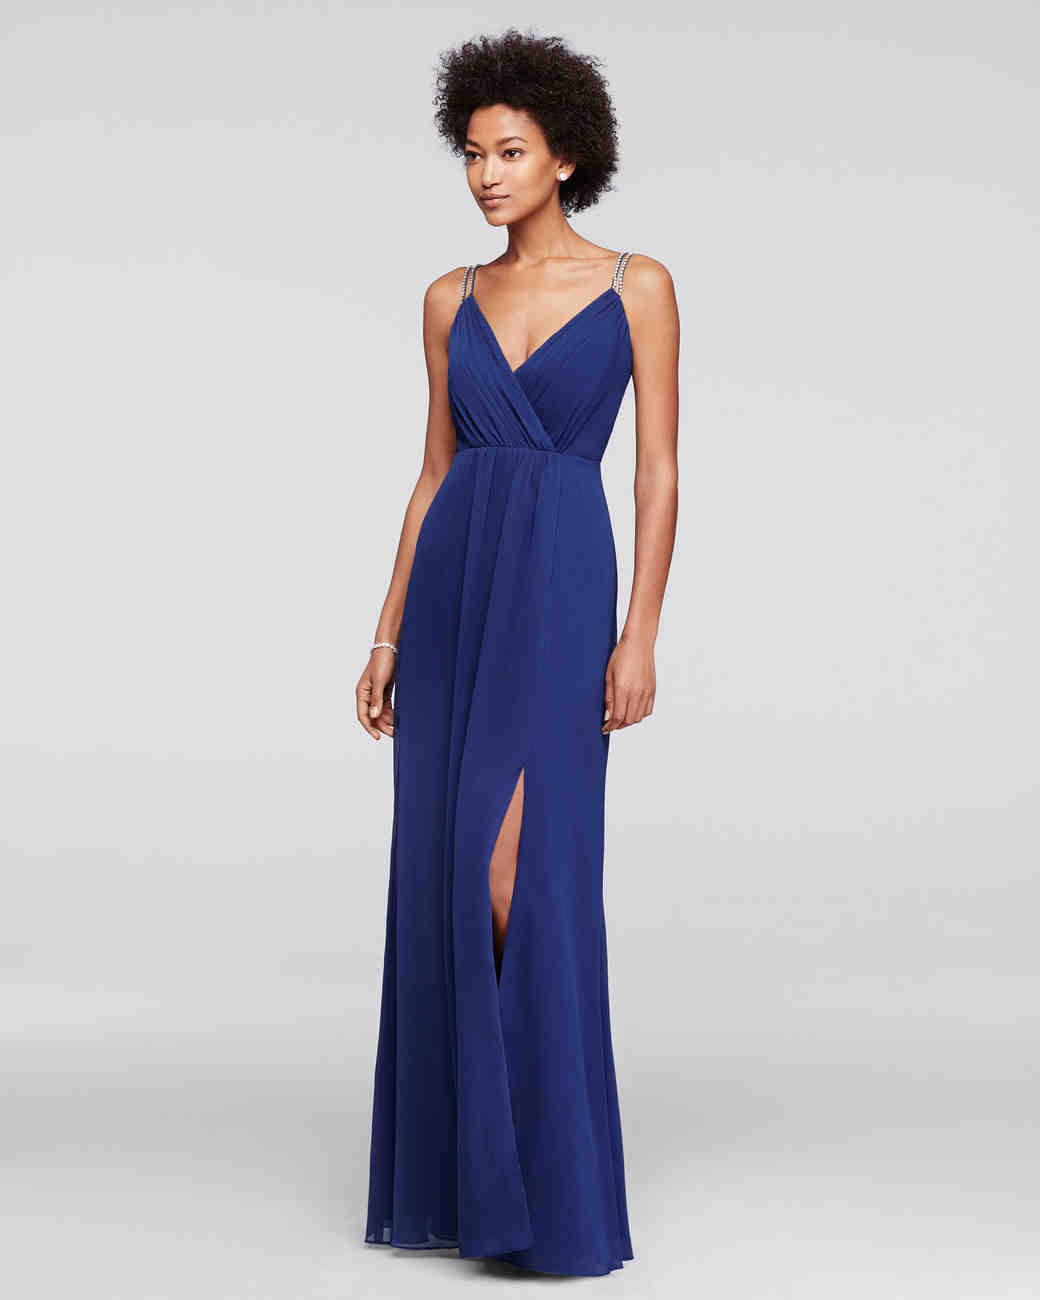 Navy blue bridesmaid dresses martha stewart weddings ombrellifo Gallery